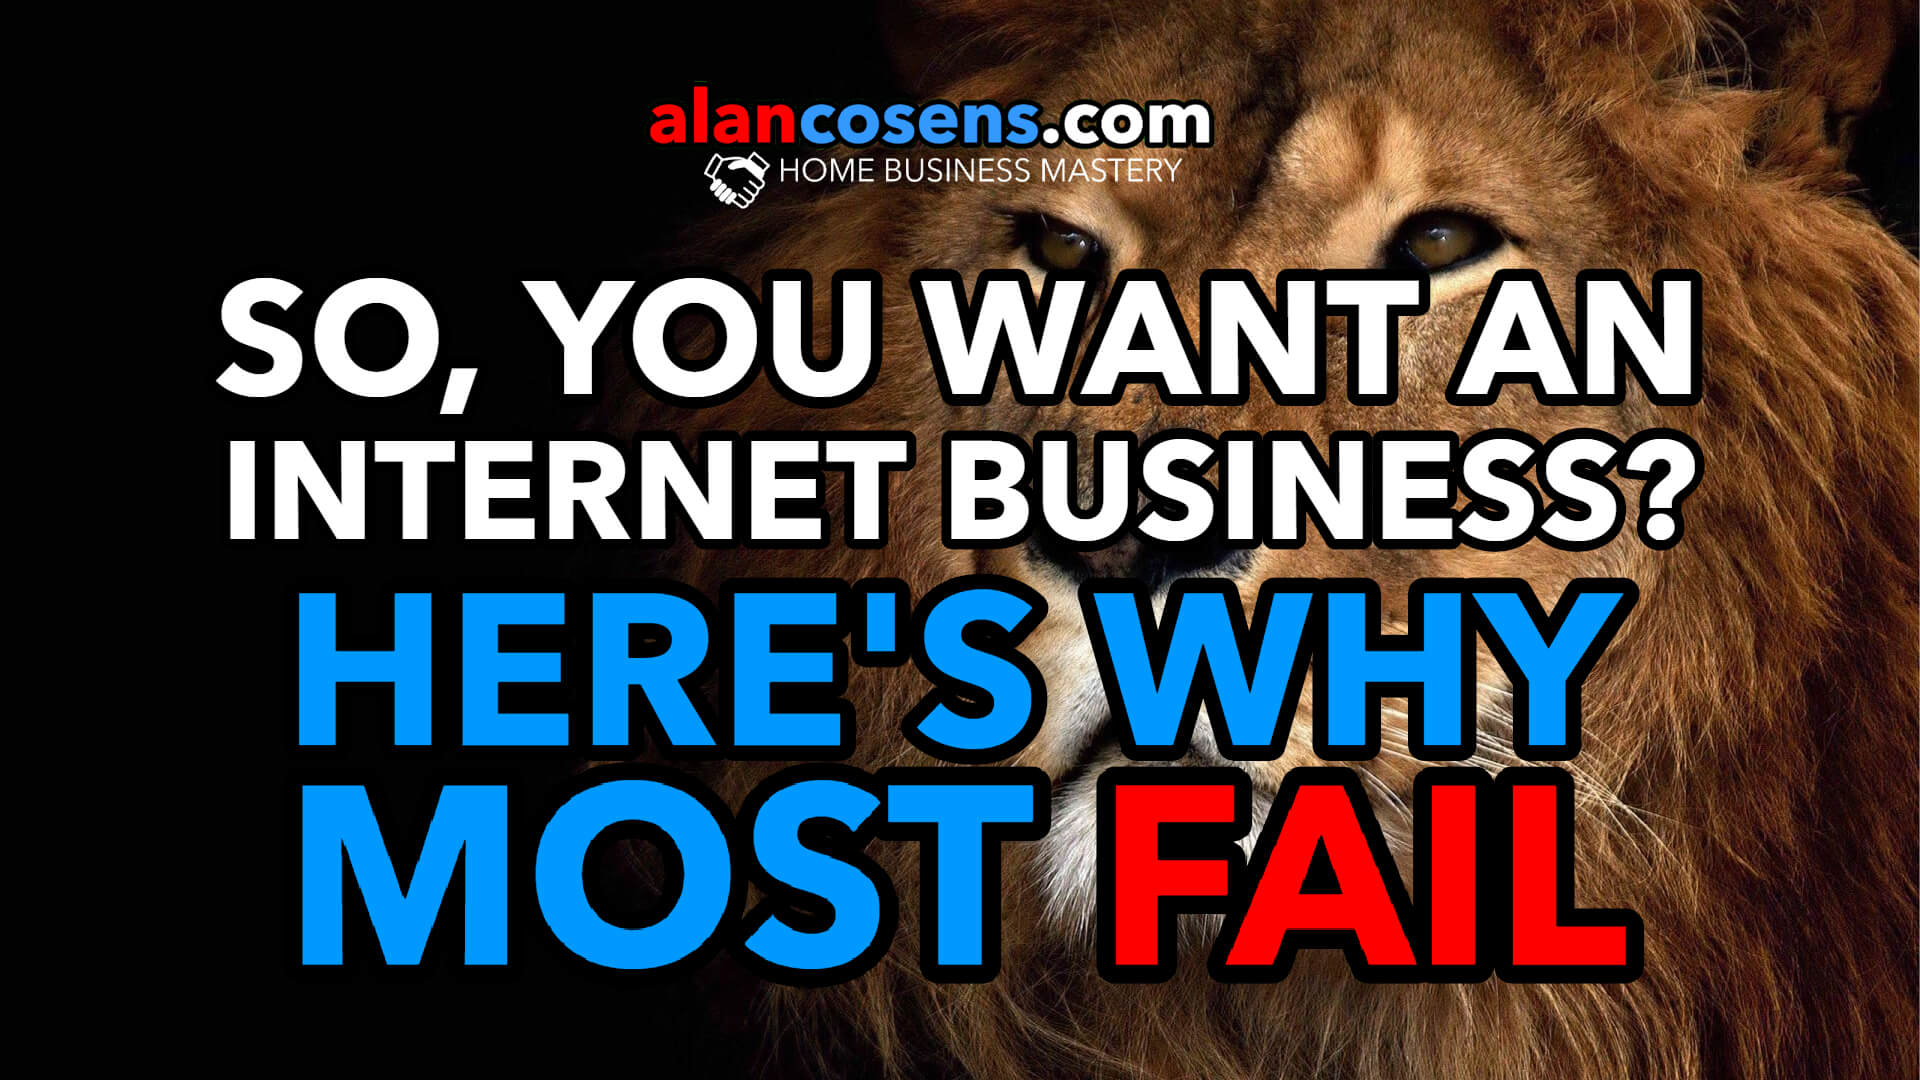 So, You Want an Internet Business, Huh?